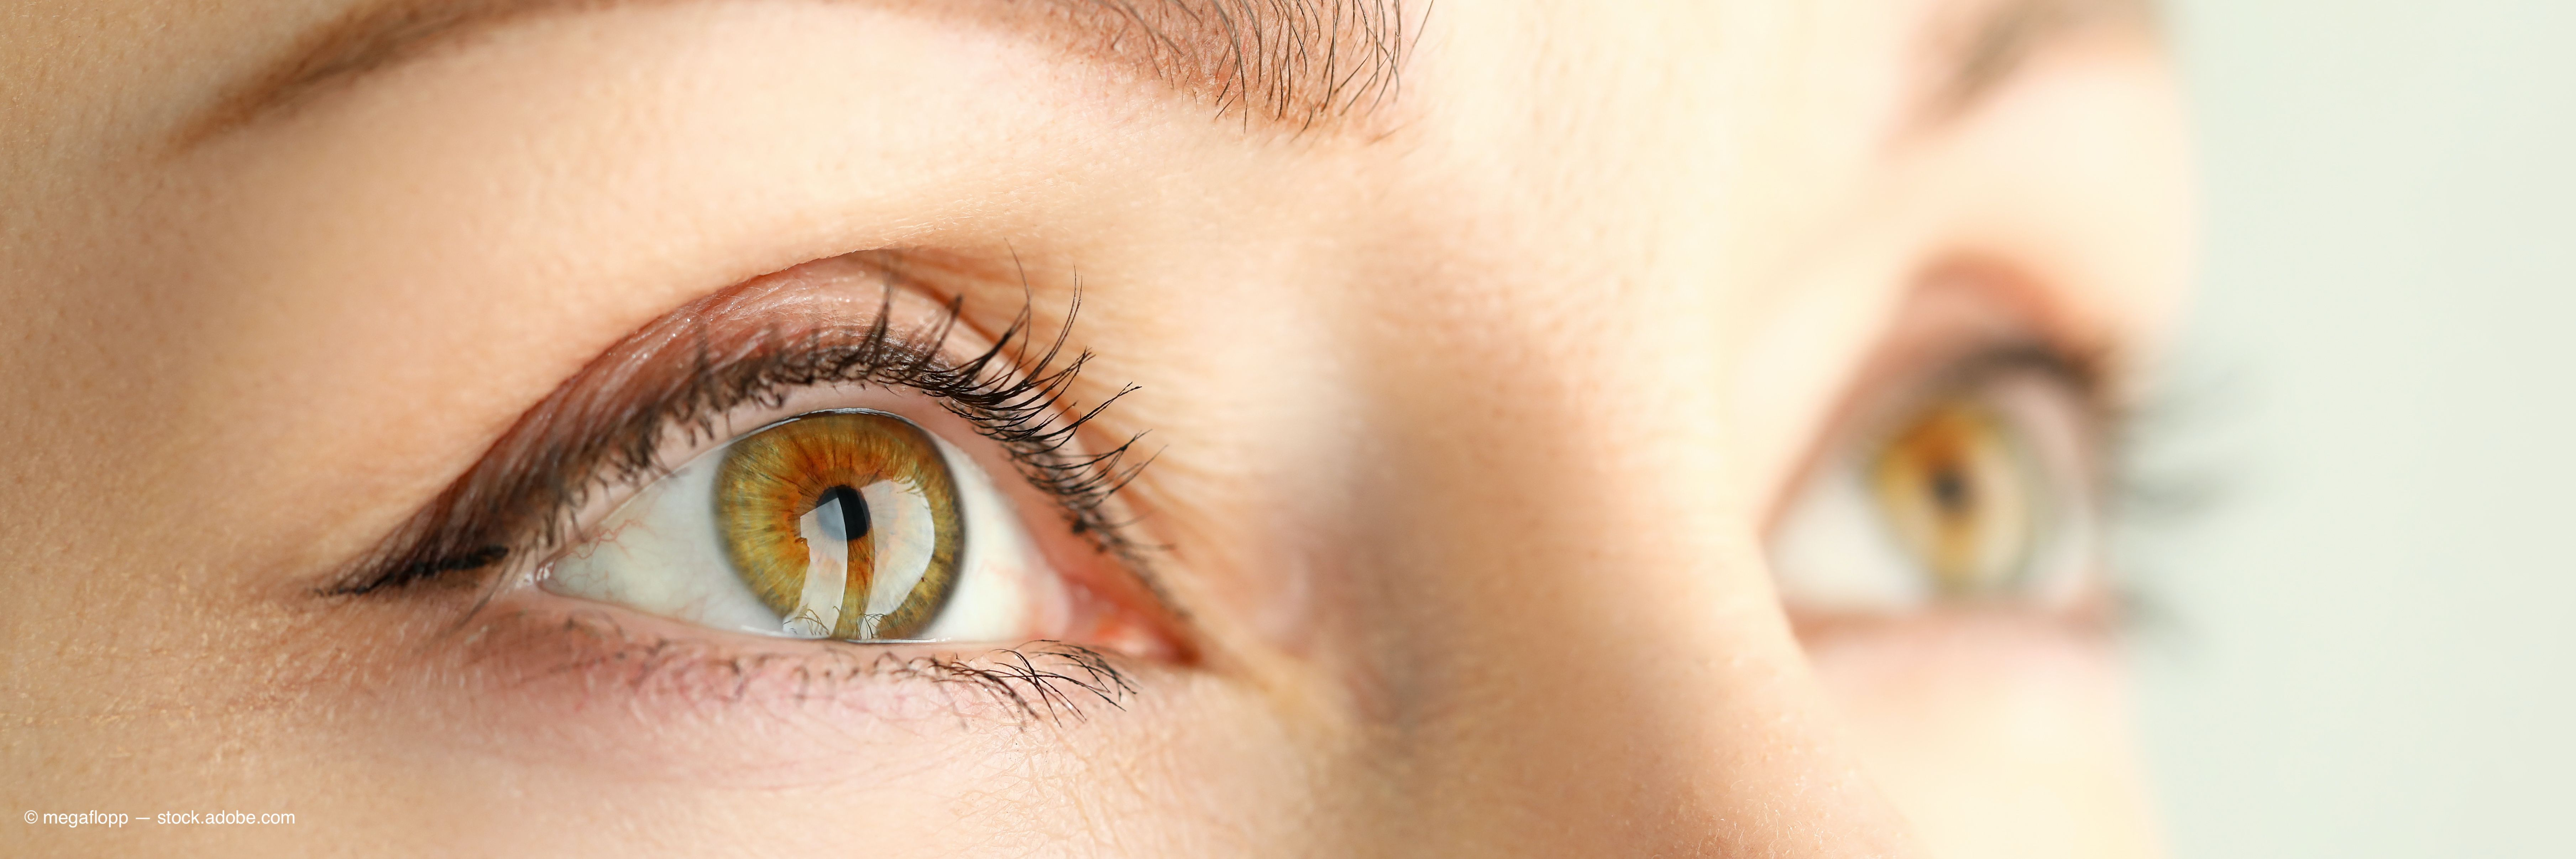 Thyroid Eye Disease Not Limited To Visual Impairment